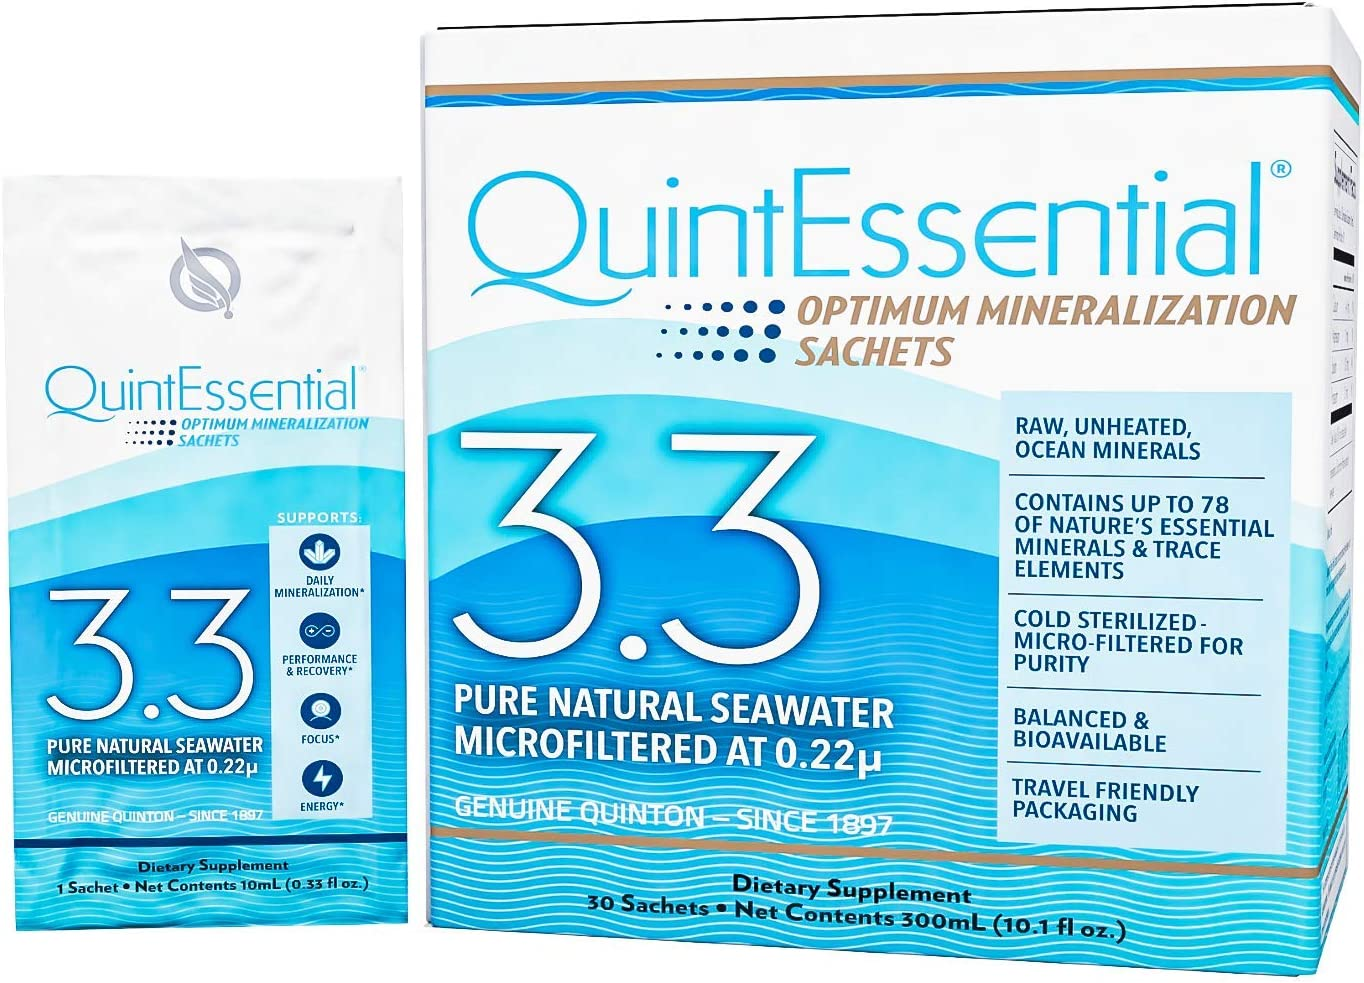 QuintEssential 3.3 - Seawater Electrolyte Liquid Minerals Supplement for Hydration, Muscle Recovery + Energy Support - Liquid Trace Minerals Electrolyte Drink (30 Sachets)